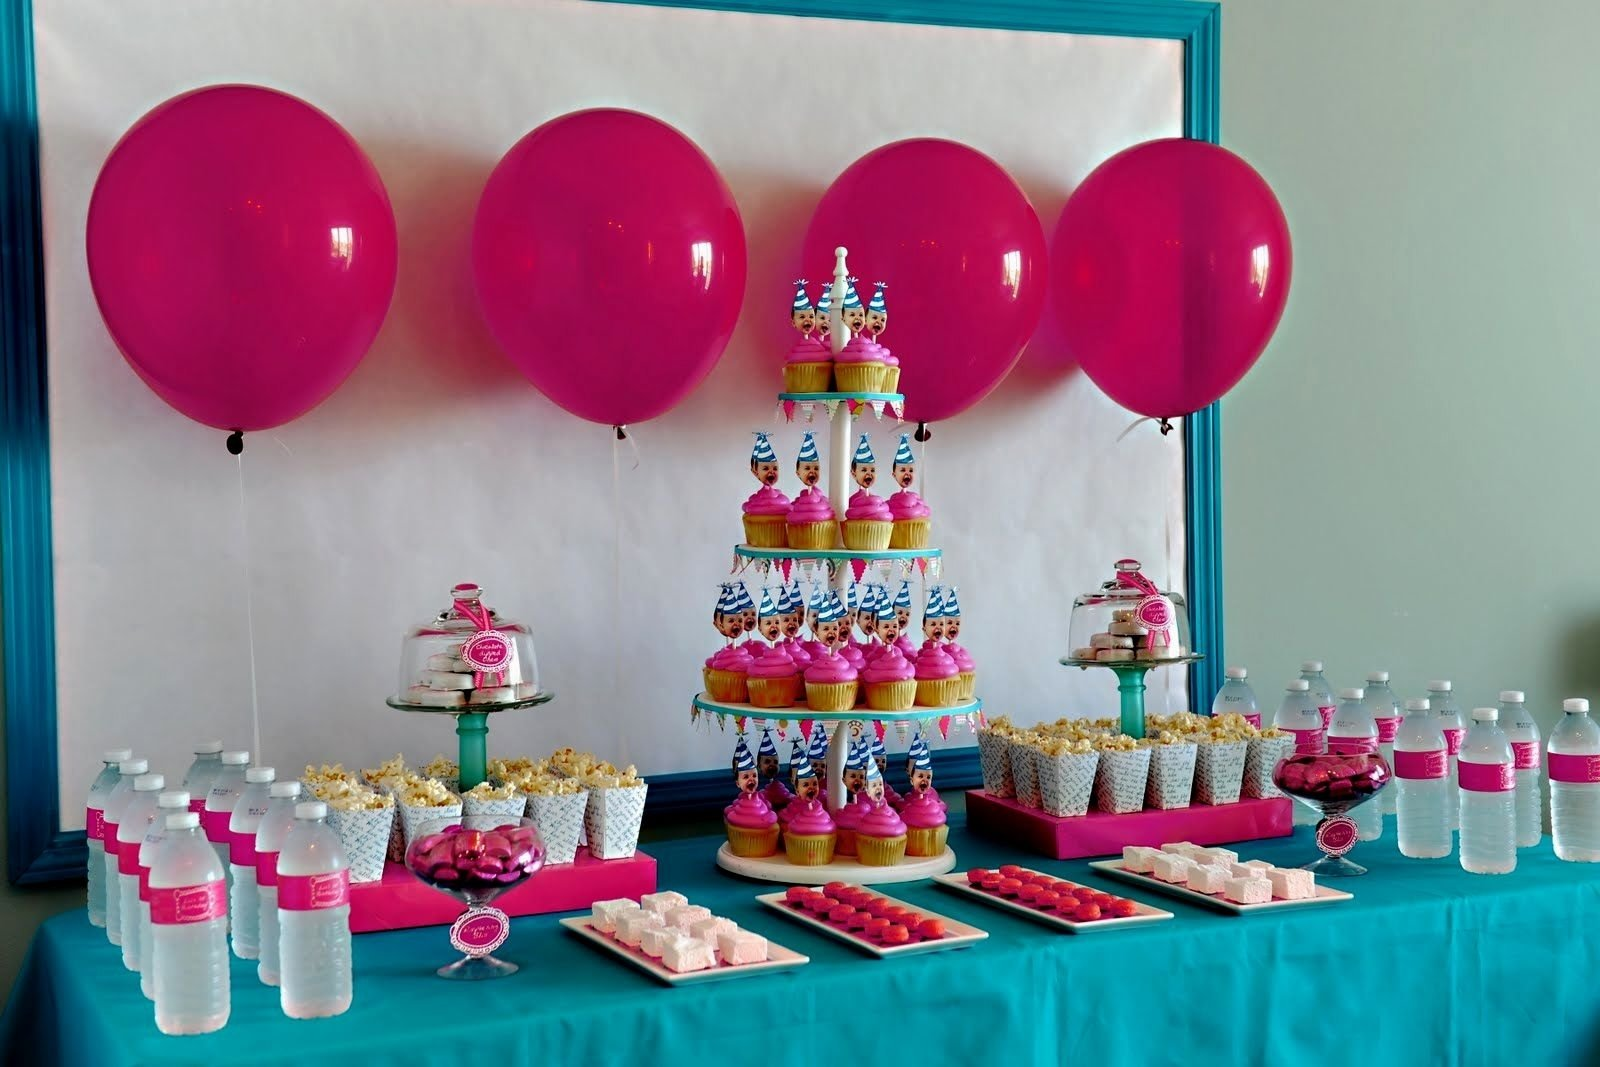 10 Stunning Ideas For Girls Birthday Party 1st birthday party ideas for girl decorating of party 1 2020